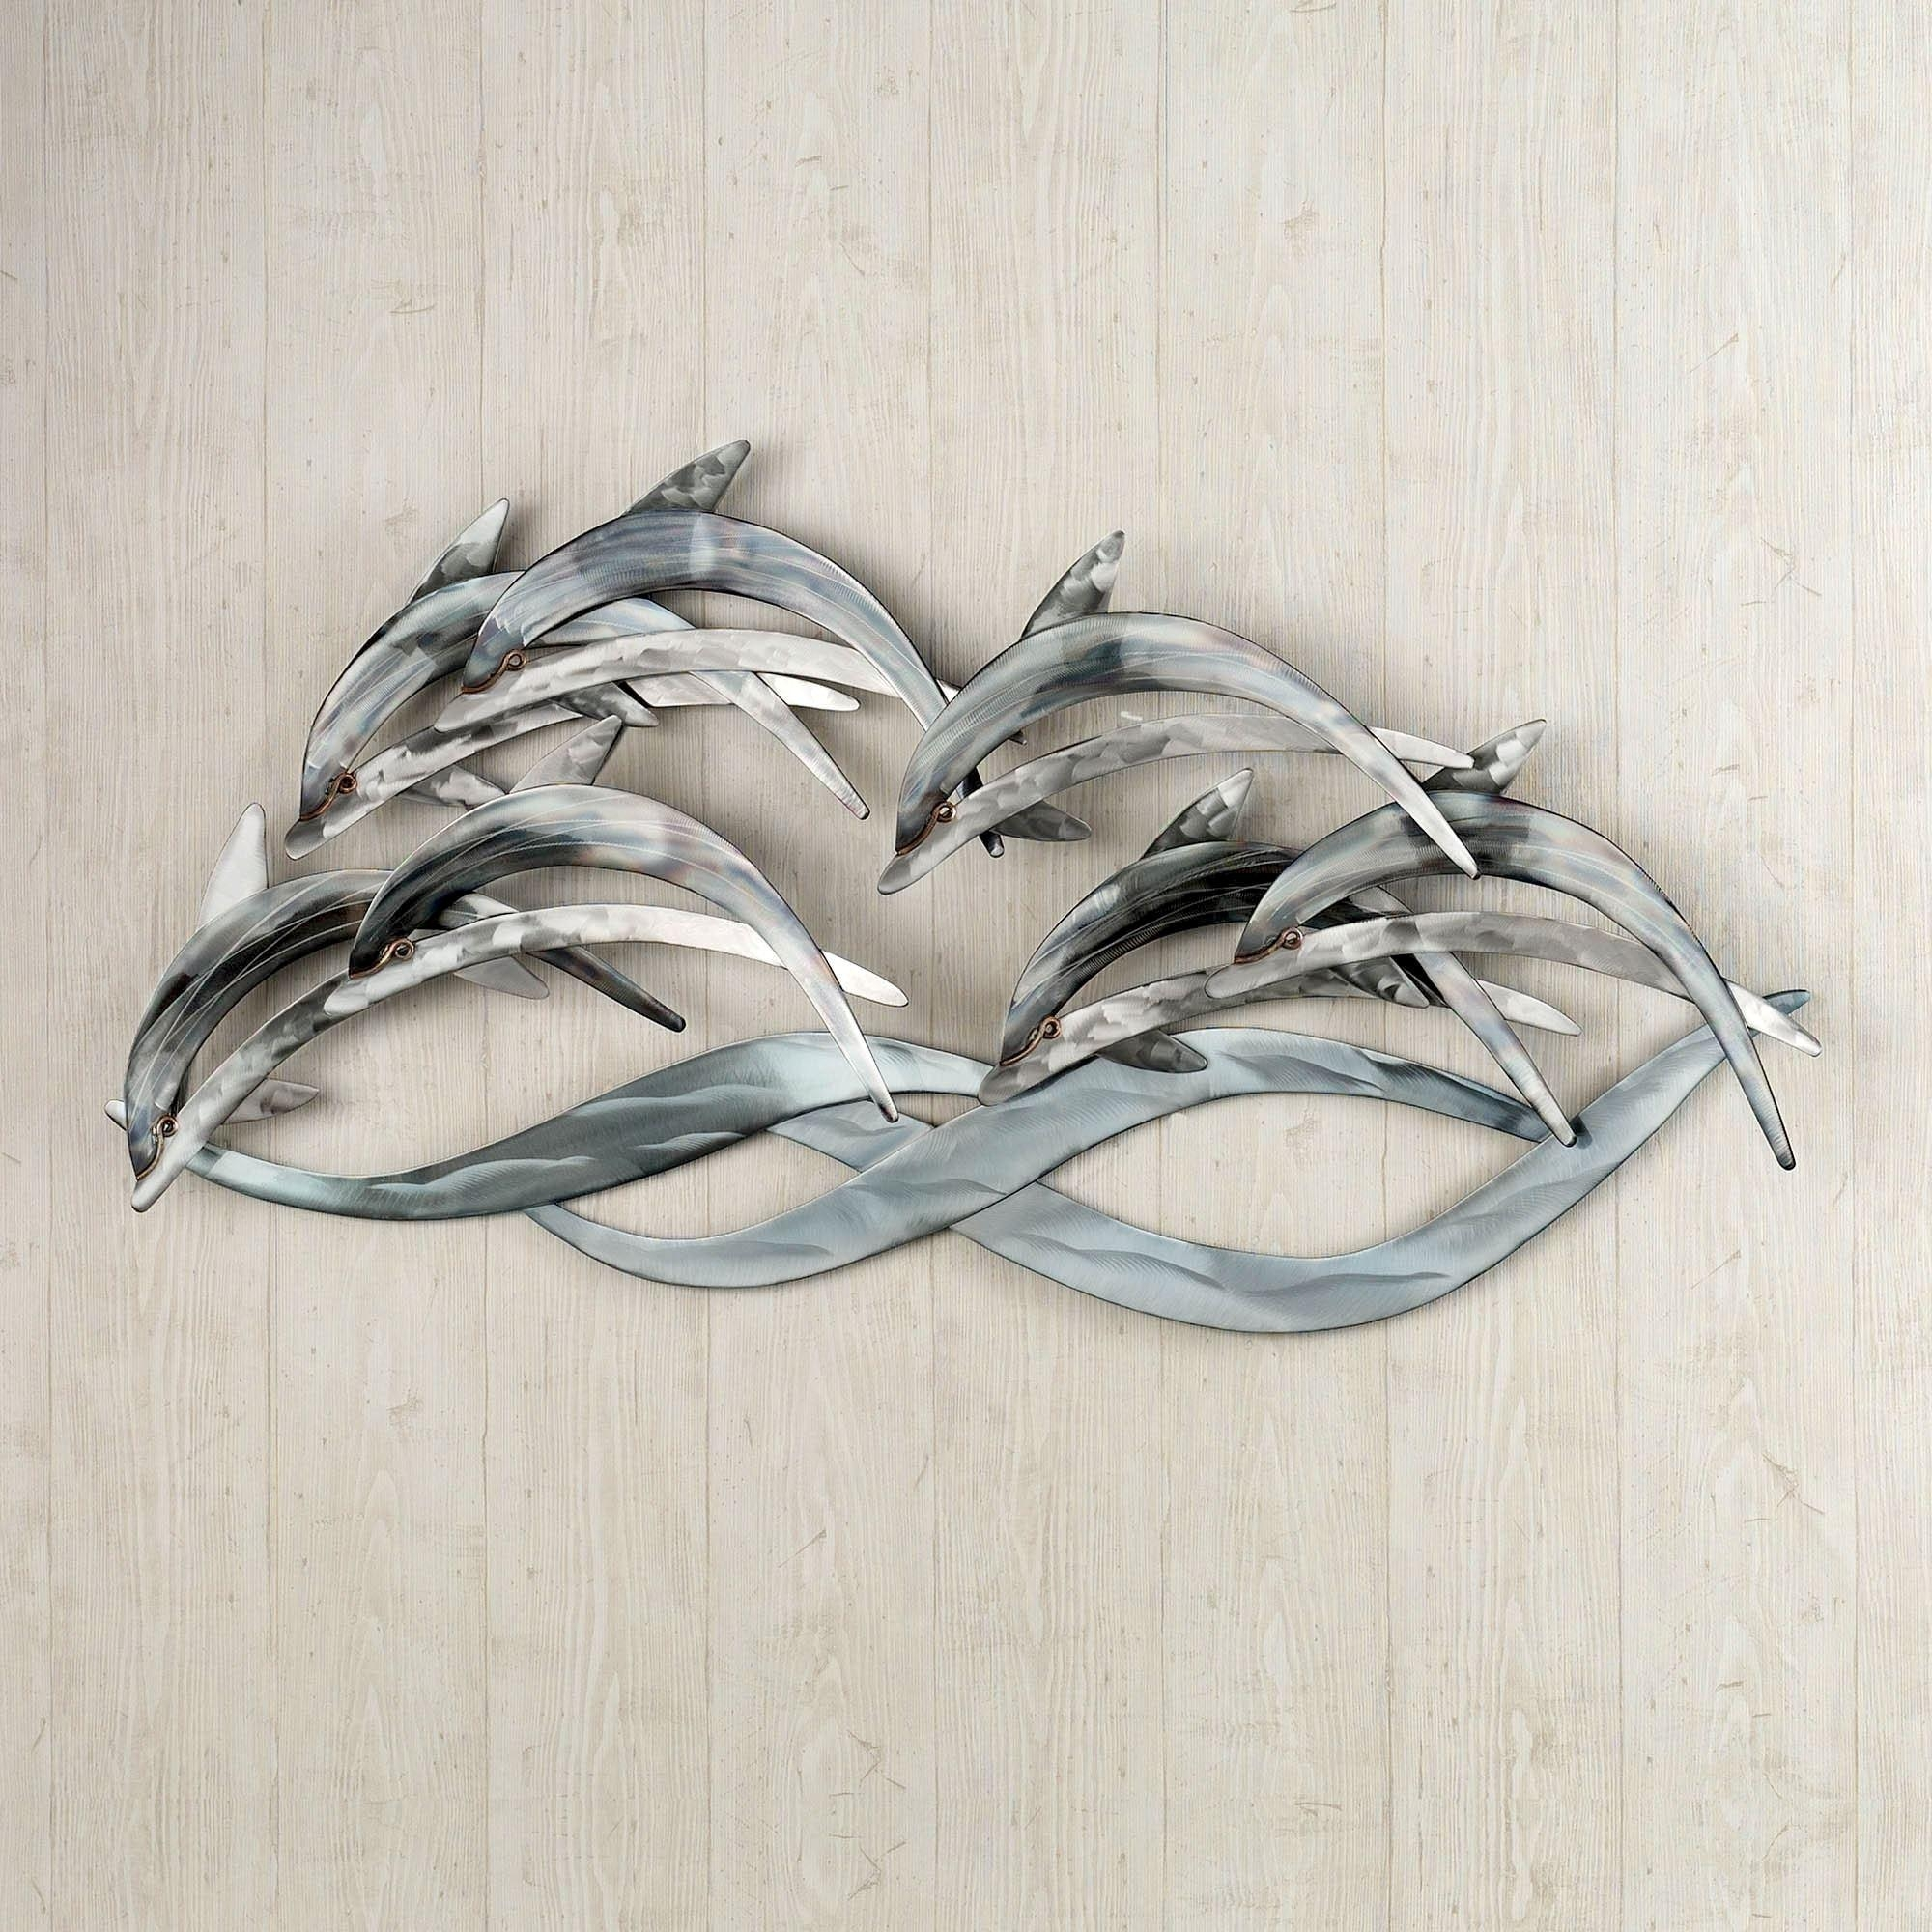 Wave Dancers Dolphin Stainless Steel Wall Sculpture Regarding Dolphin Metal Wall Art (Image 19 of 20)